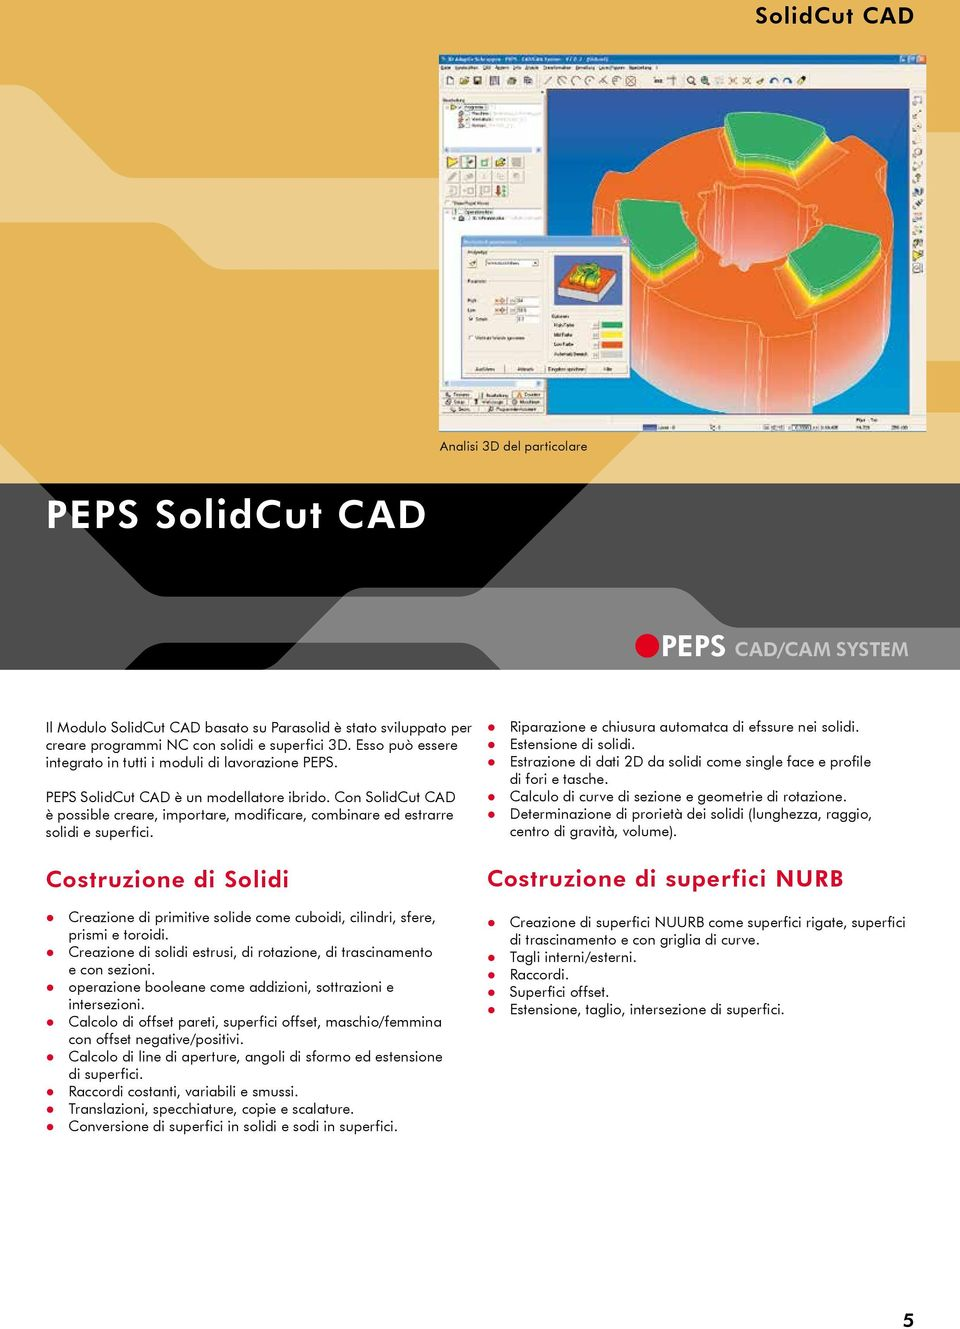 Con SolidCut CAD è possible creare, importare, modificare, combinare ed estrarre solidi e superfici.